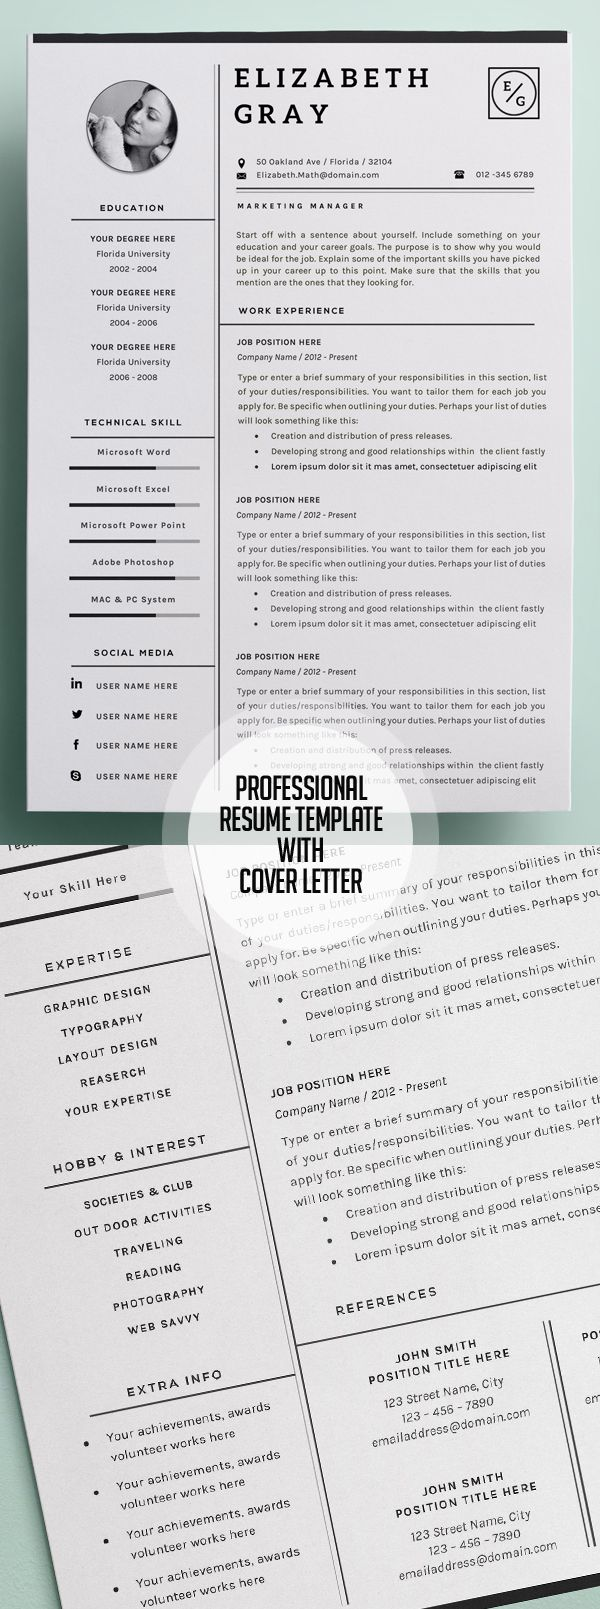 Picnictoimpeachus  Prepossessing  Resume Ideas On Pinterest  Resume Resume Templates And  With Glamorous Professional And Modern Resume Template With Page Cover Cvtemplate With Cute Free Downloadable Resumes Also Tax Manager Resume In Addition Resume Career Objective Examples And Dental Assistant Resume Templates As Well As Community College Resume Additionally Resume Lawyer From Pinterestcom With Picnictoimpeachus  Glamorous  Resume Ideas On Pinterest  Resume Resume Templates And  With Cute Professional And Modern Resume Template With Page Cover Cvtemplate And Prepossessing Free Downloadable Resumes Also Tax Manager Resume In Addition Resume Career Objective Examples From Pinterestcom